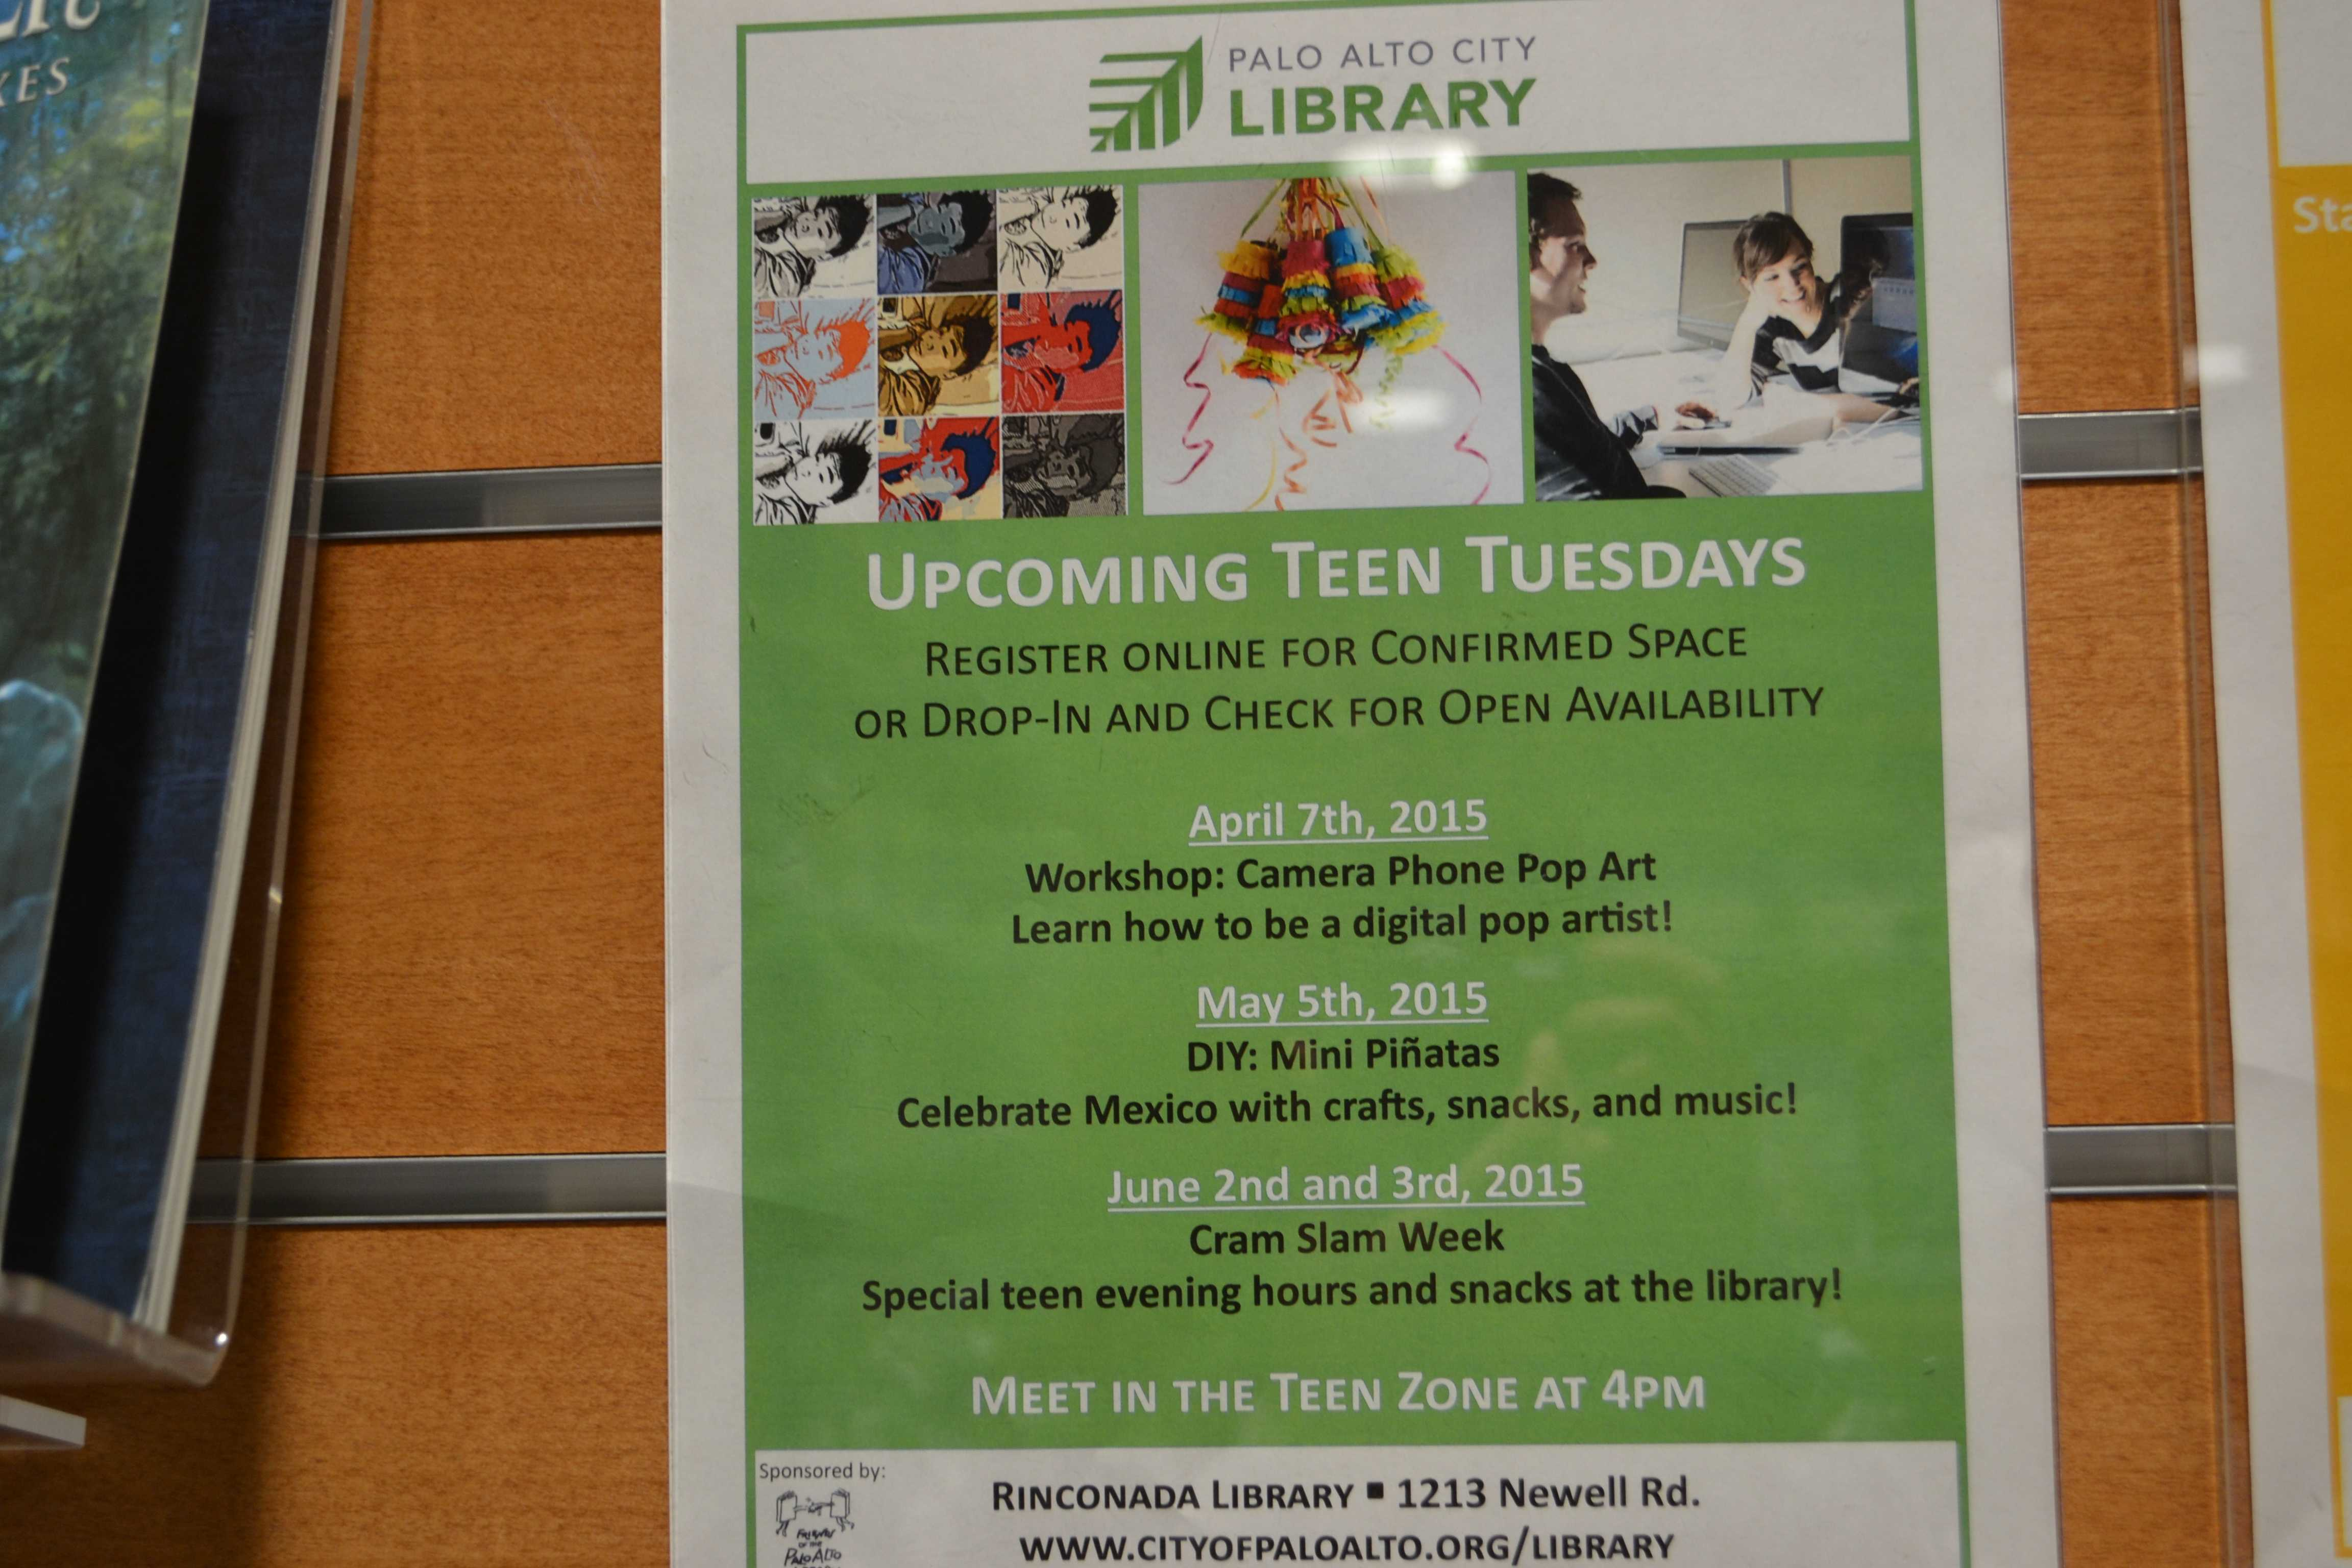 Teen Tuesday sign at the Mitchell park library advertising the upcoming events. Photo taken by Aisha Chabane